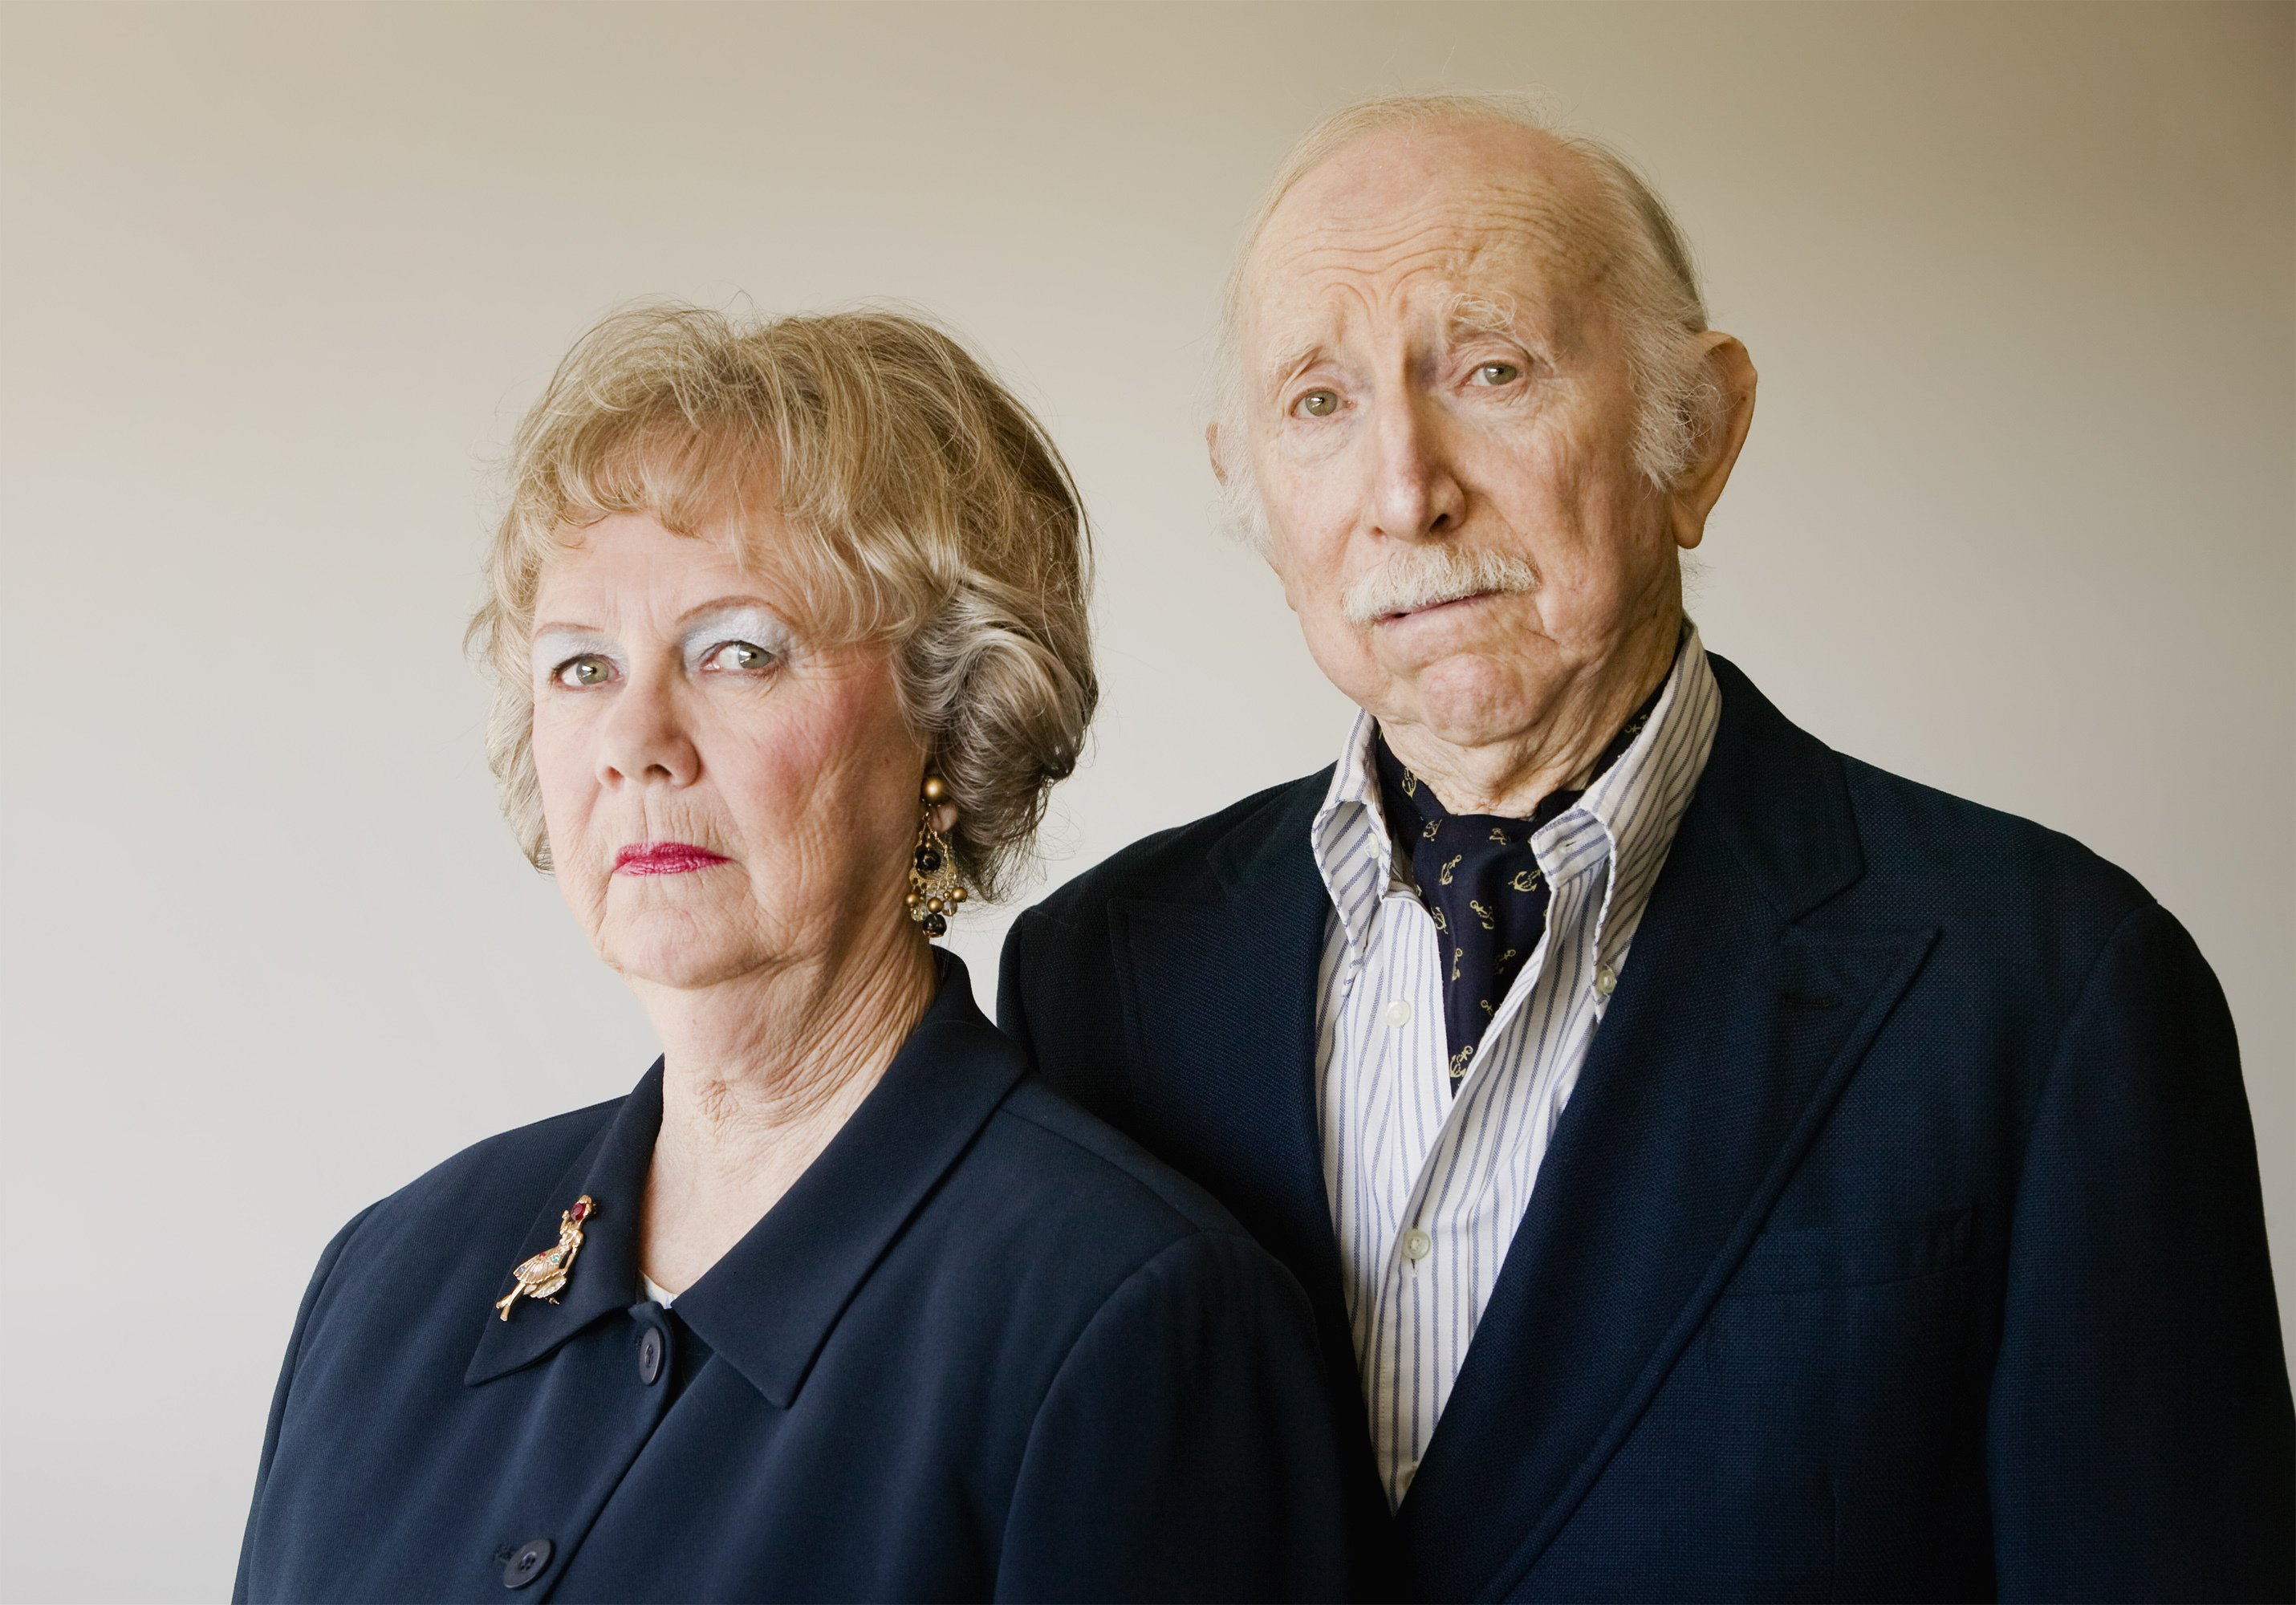 Angry grandparents neatly dressed. | Source: Shutterstock.